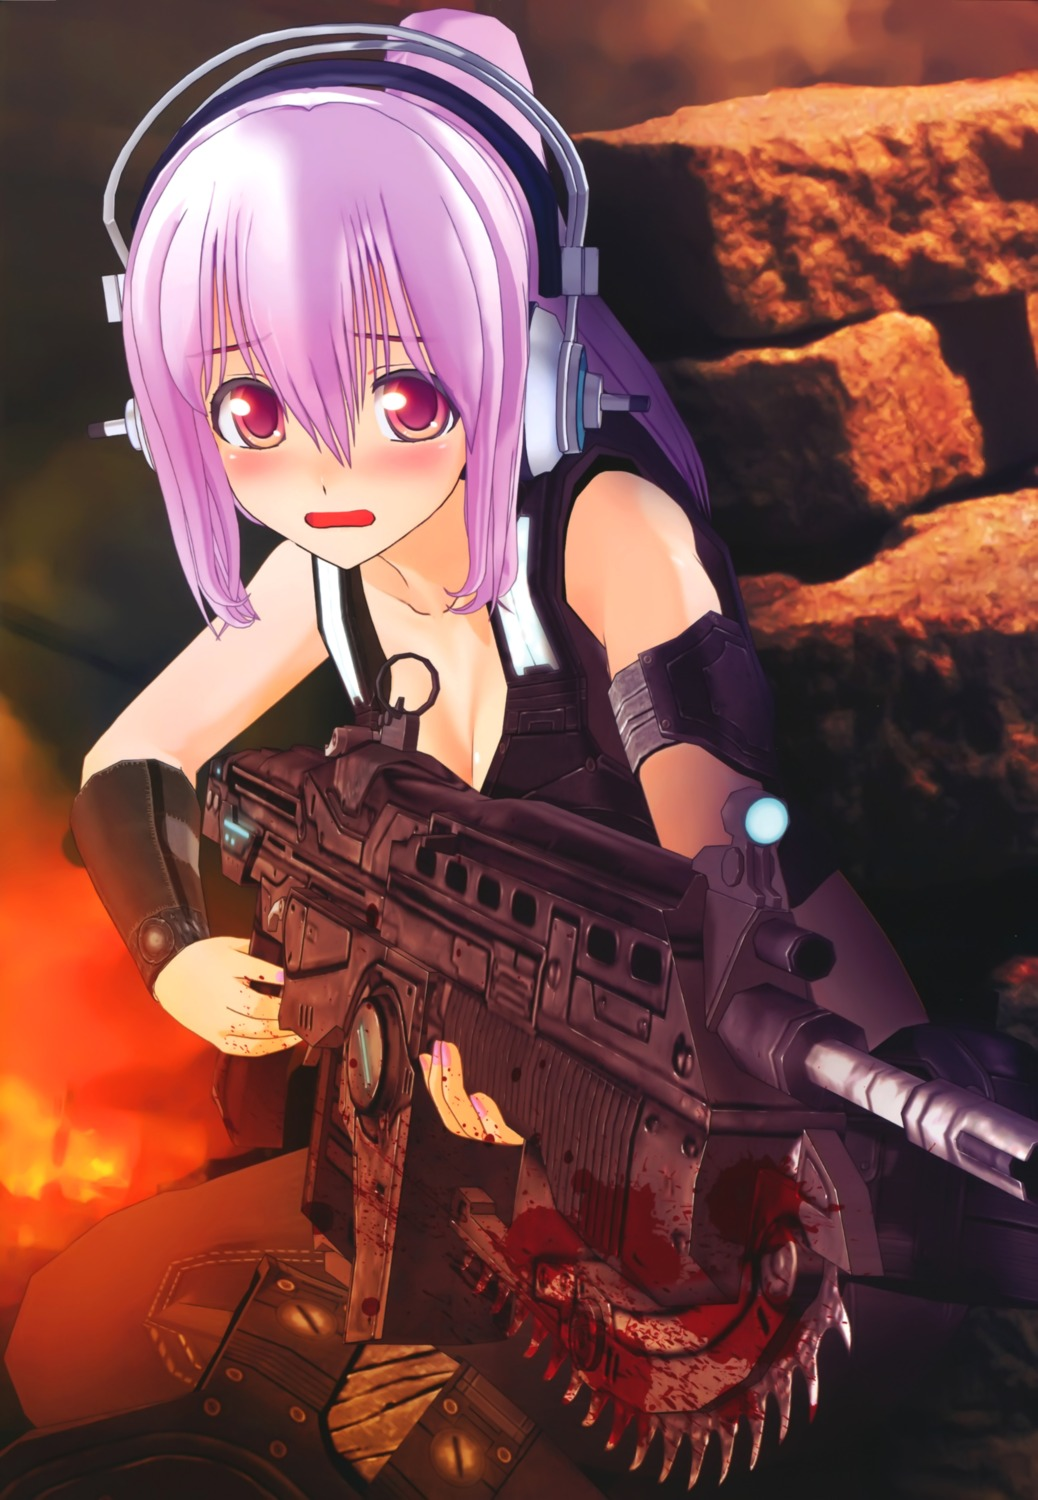 blood cg cleavage cosplay gears_of_war gun headphones sonico super_sonico tsuji_santa